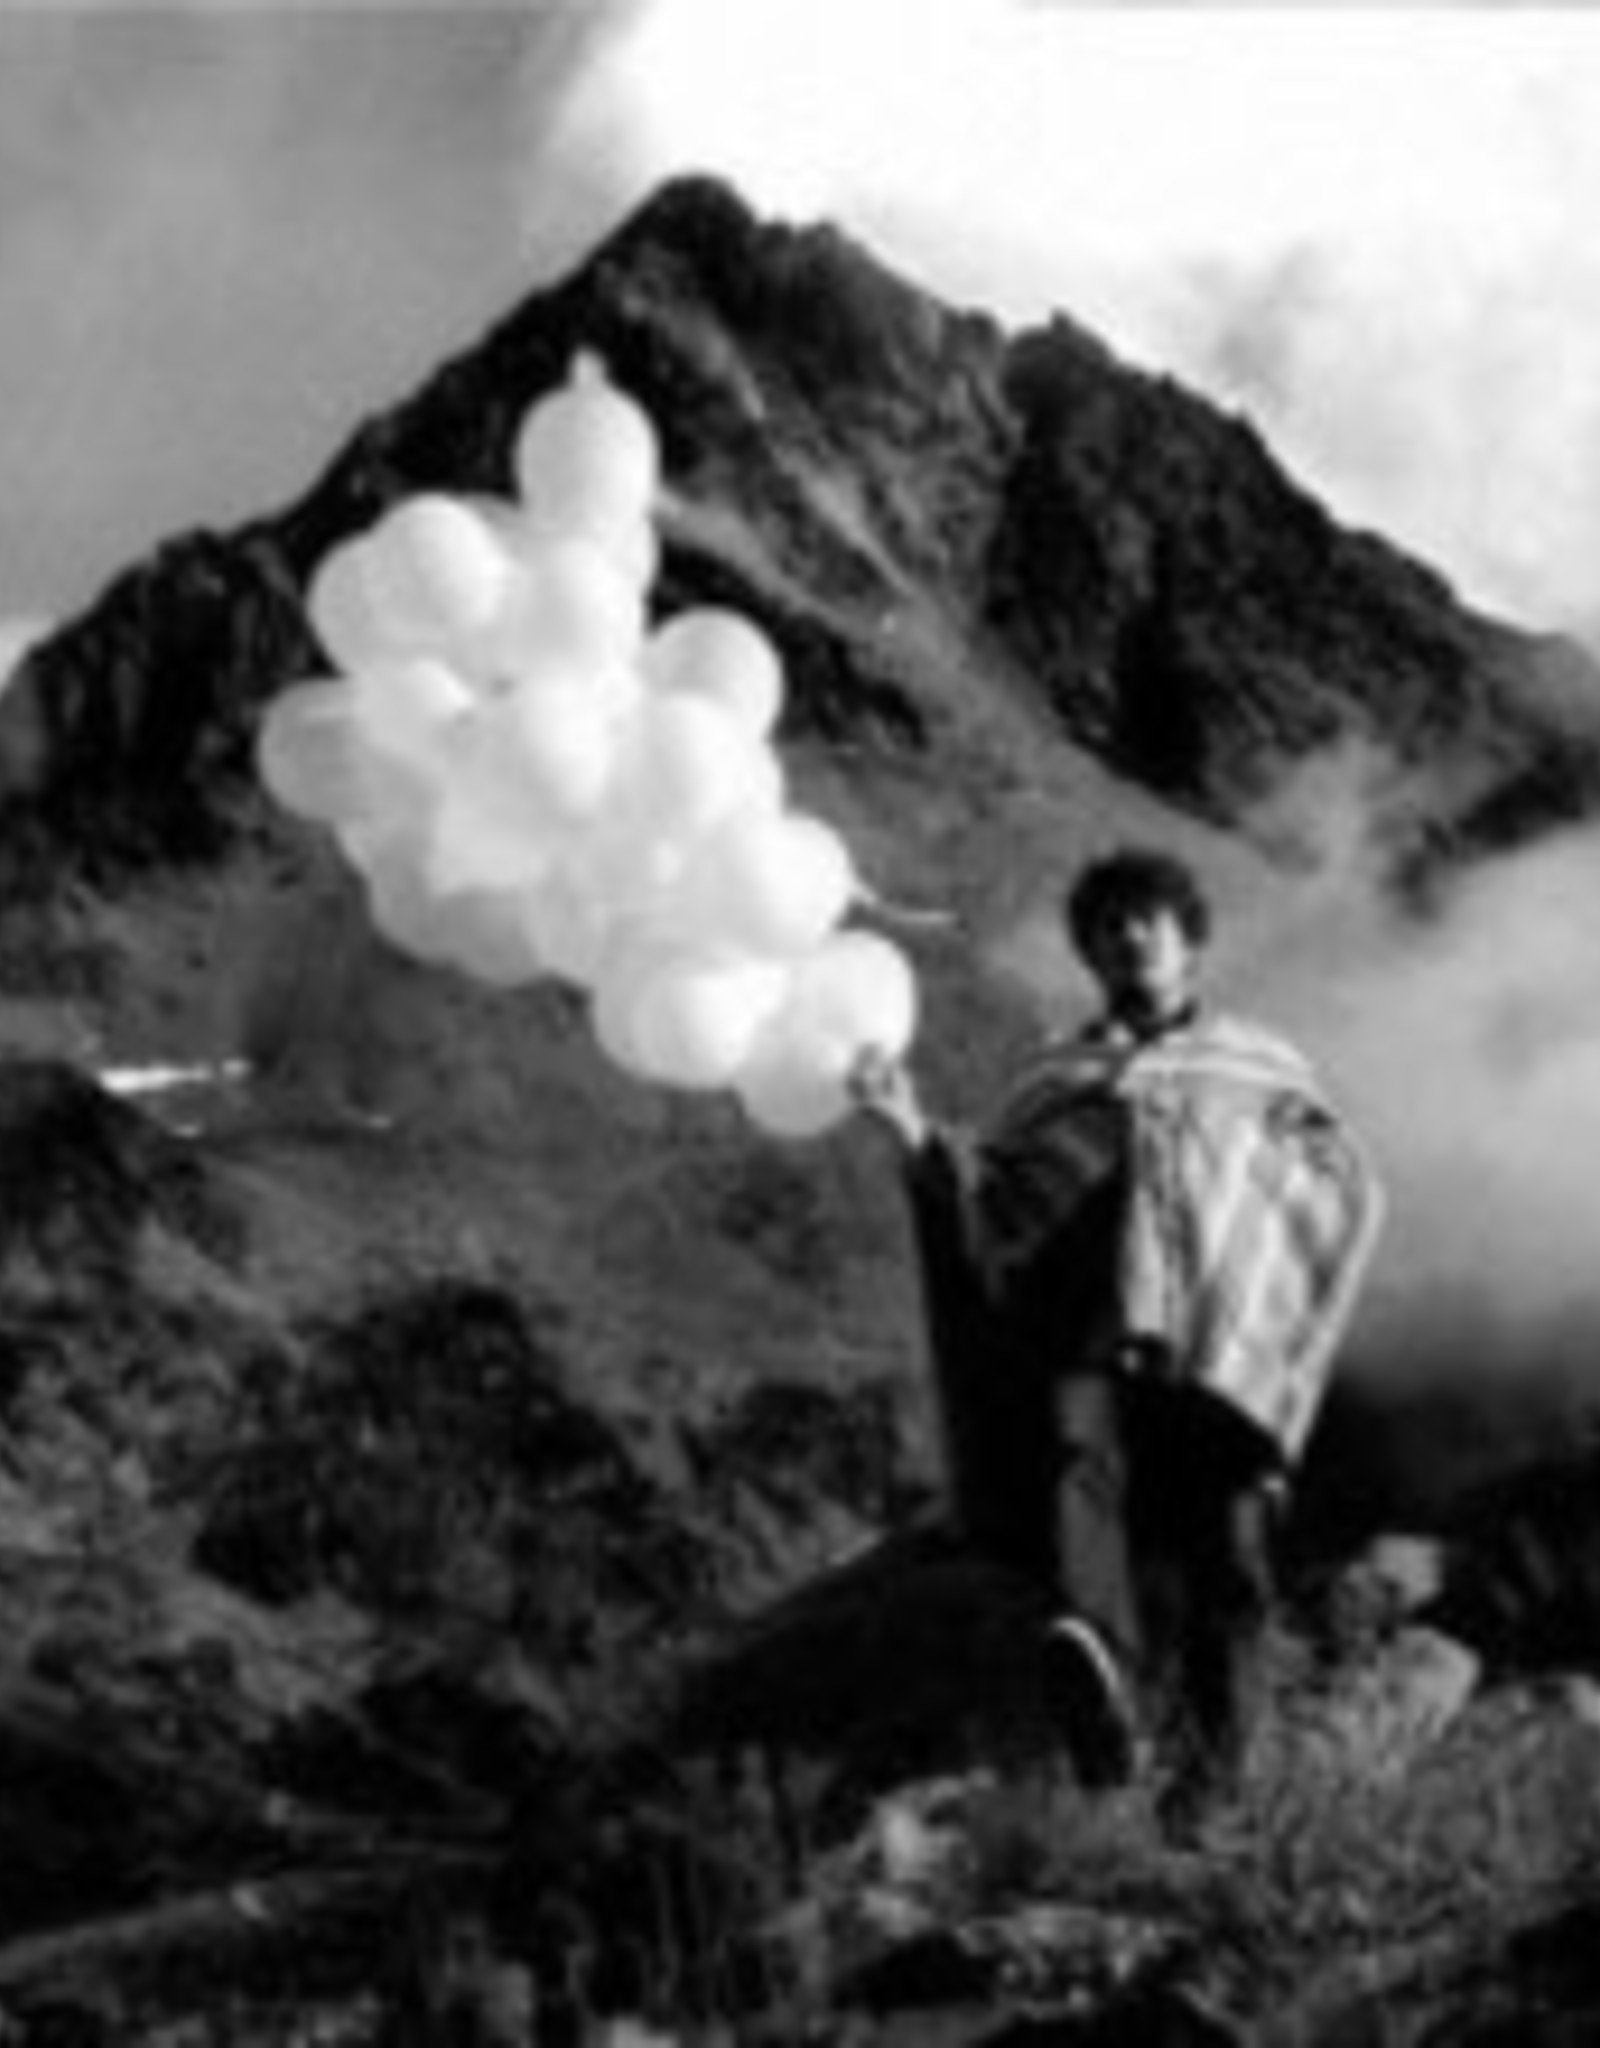 Richard Swift - Dressed Up For The Letdown (Secretly 25th Anniversary  Exclusive) (White Vinyl LP)